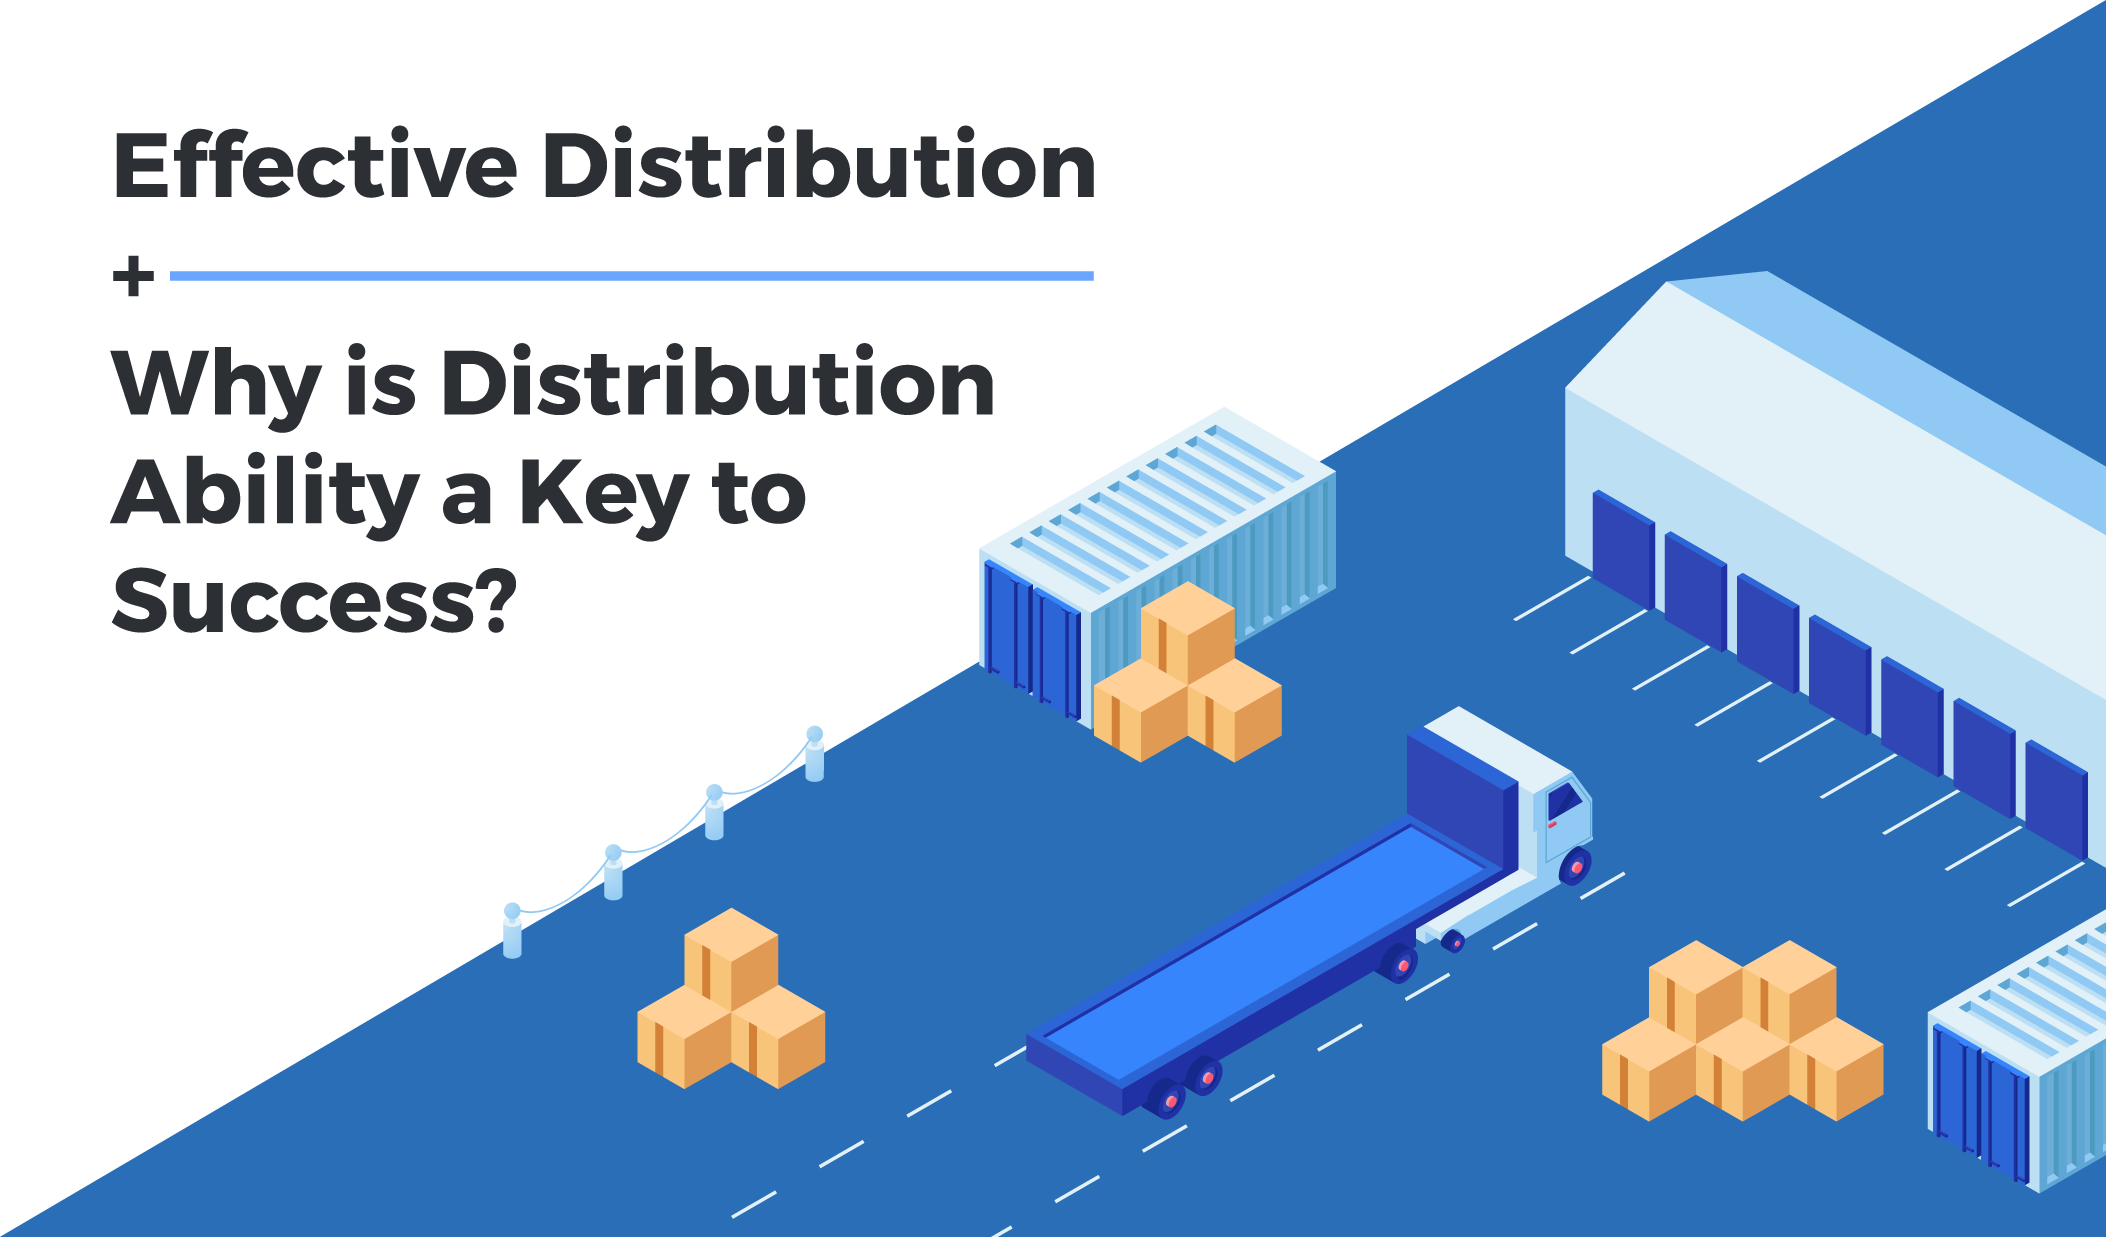 Why is Distribution Ability a Key to Success?